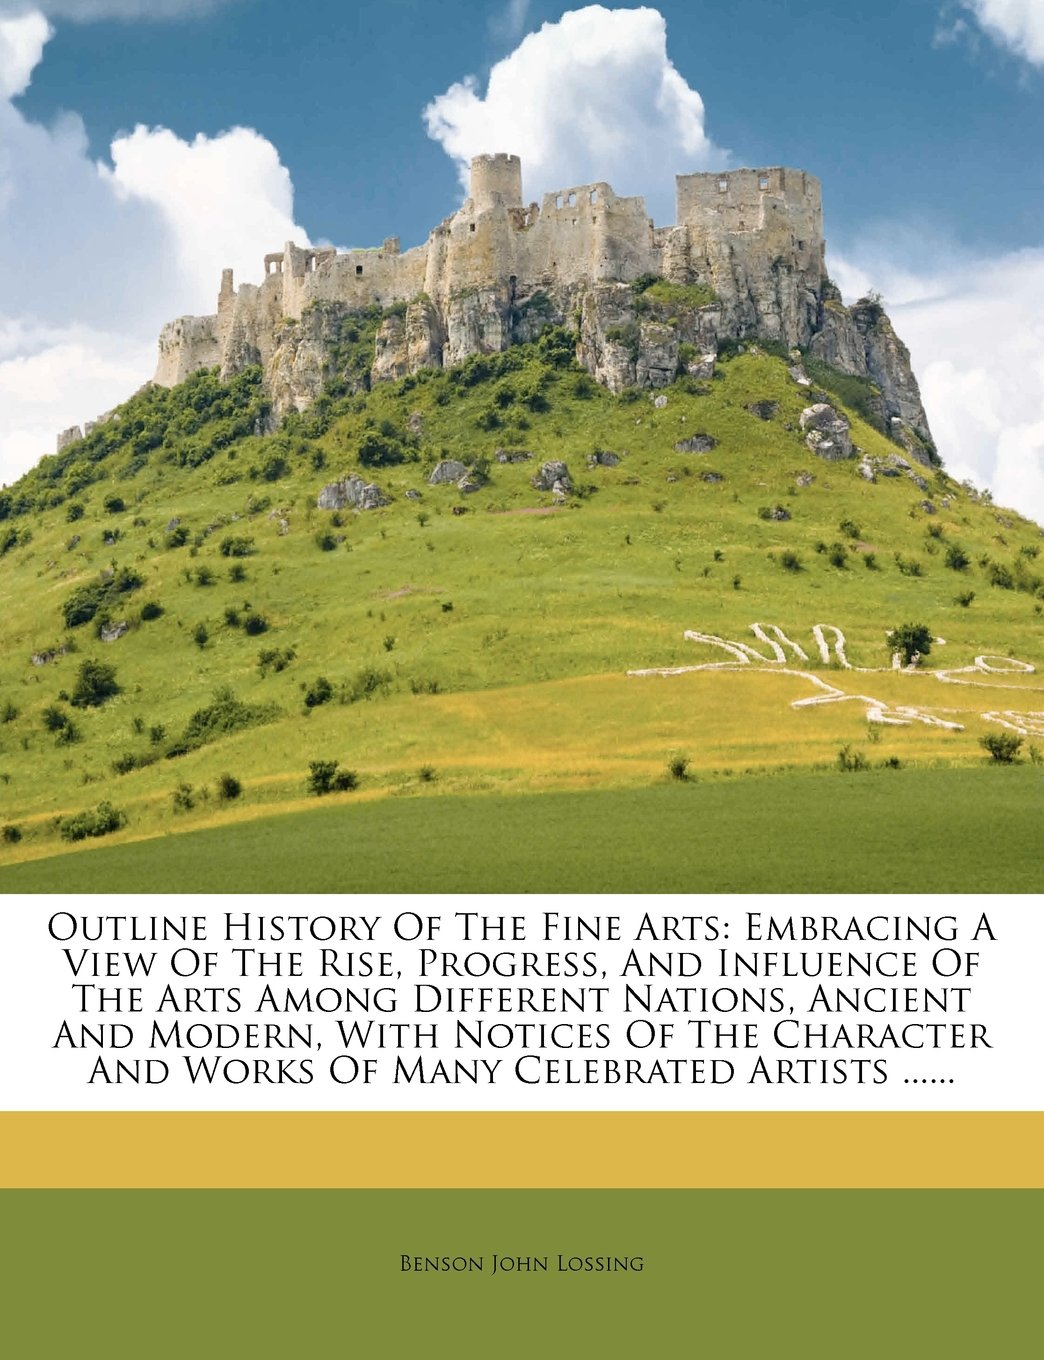 Outline History of the Fine Arts: Embracing a View of the Rise, Progress, and Influence of the Arts Among Different Nations, Ancient and Modern, with PDF